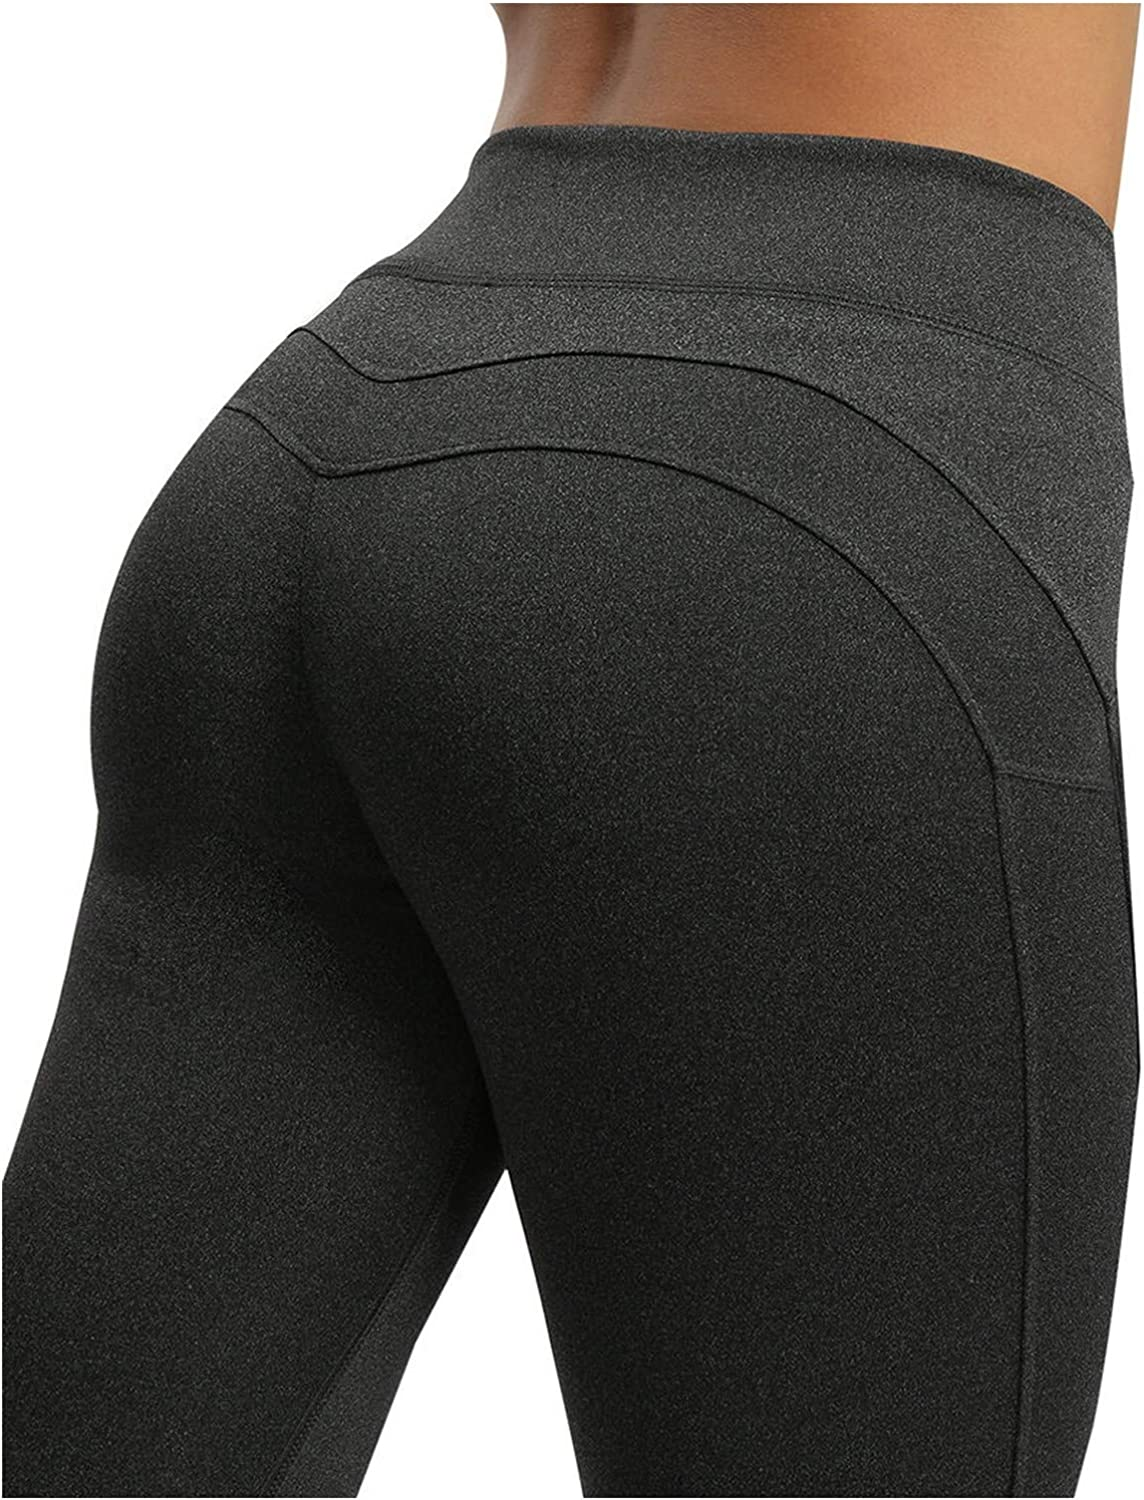 Women Leggings Fitness Leggings Women Waist Leggins Patchwork Leggings 4Color